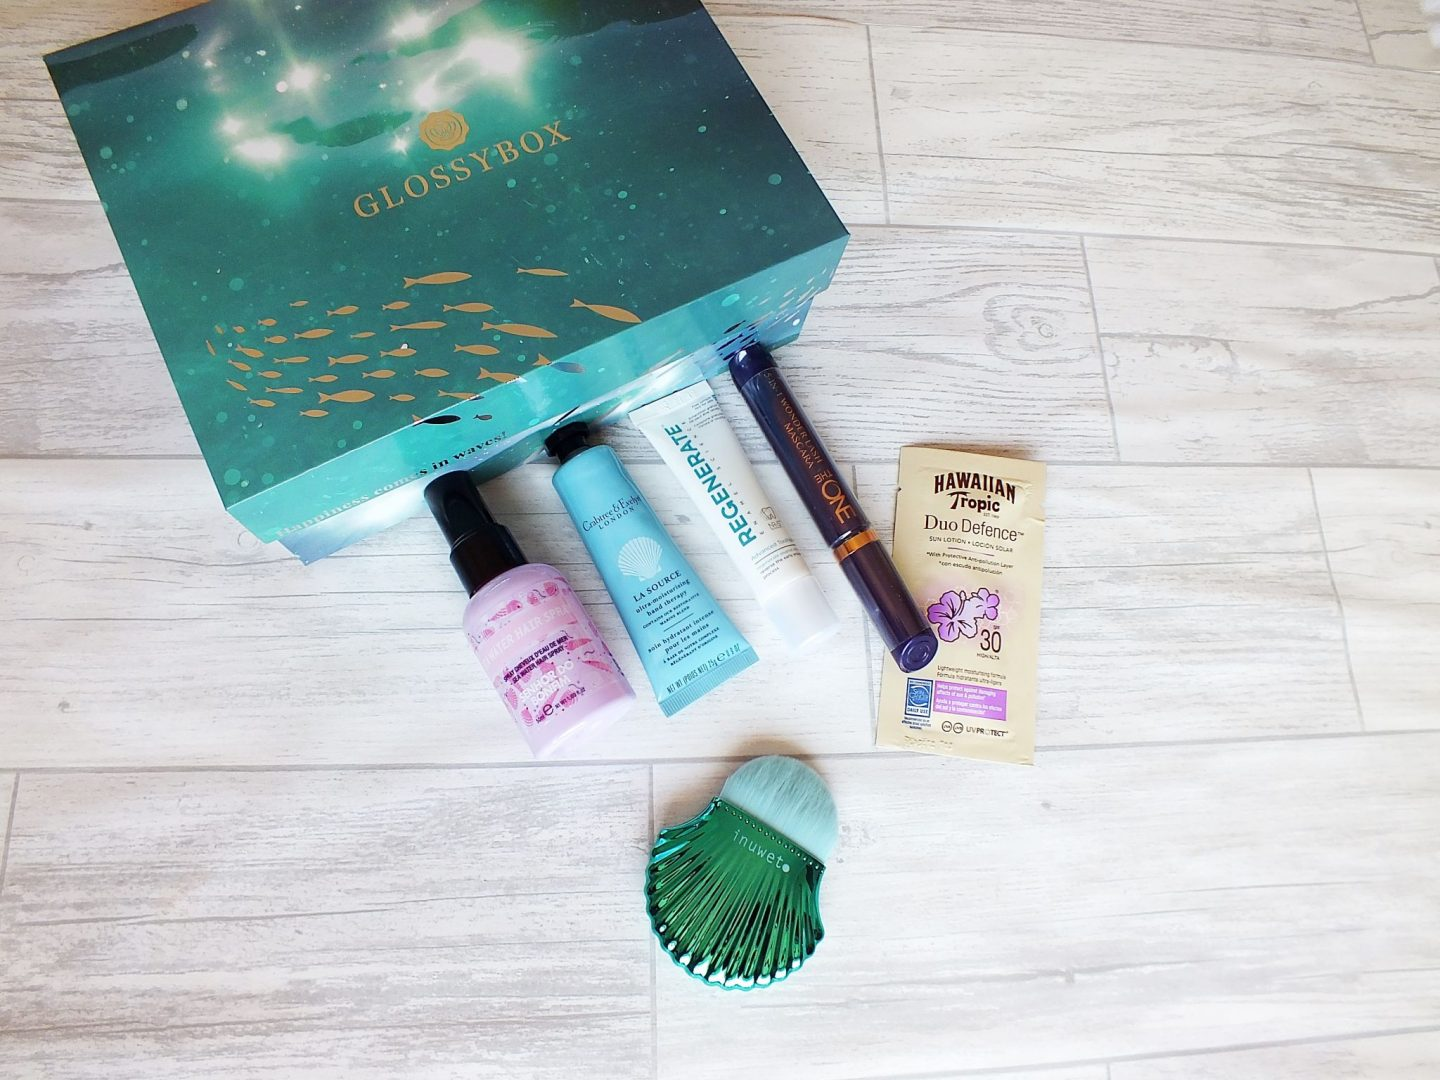 July Glossybox with products lined up on it